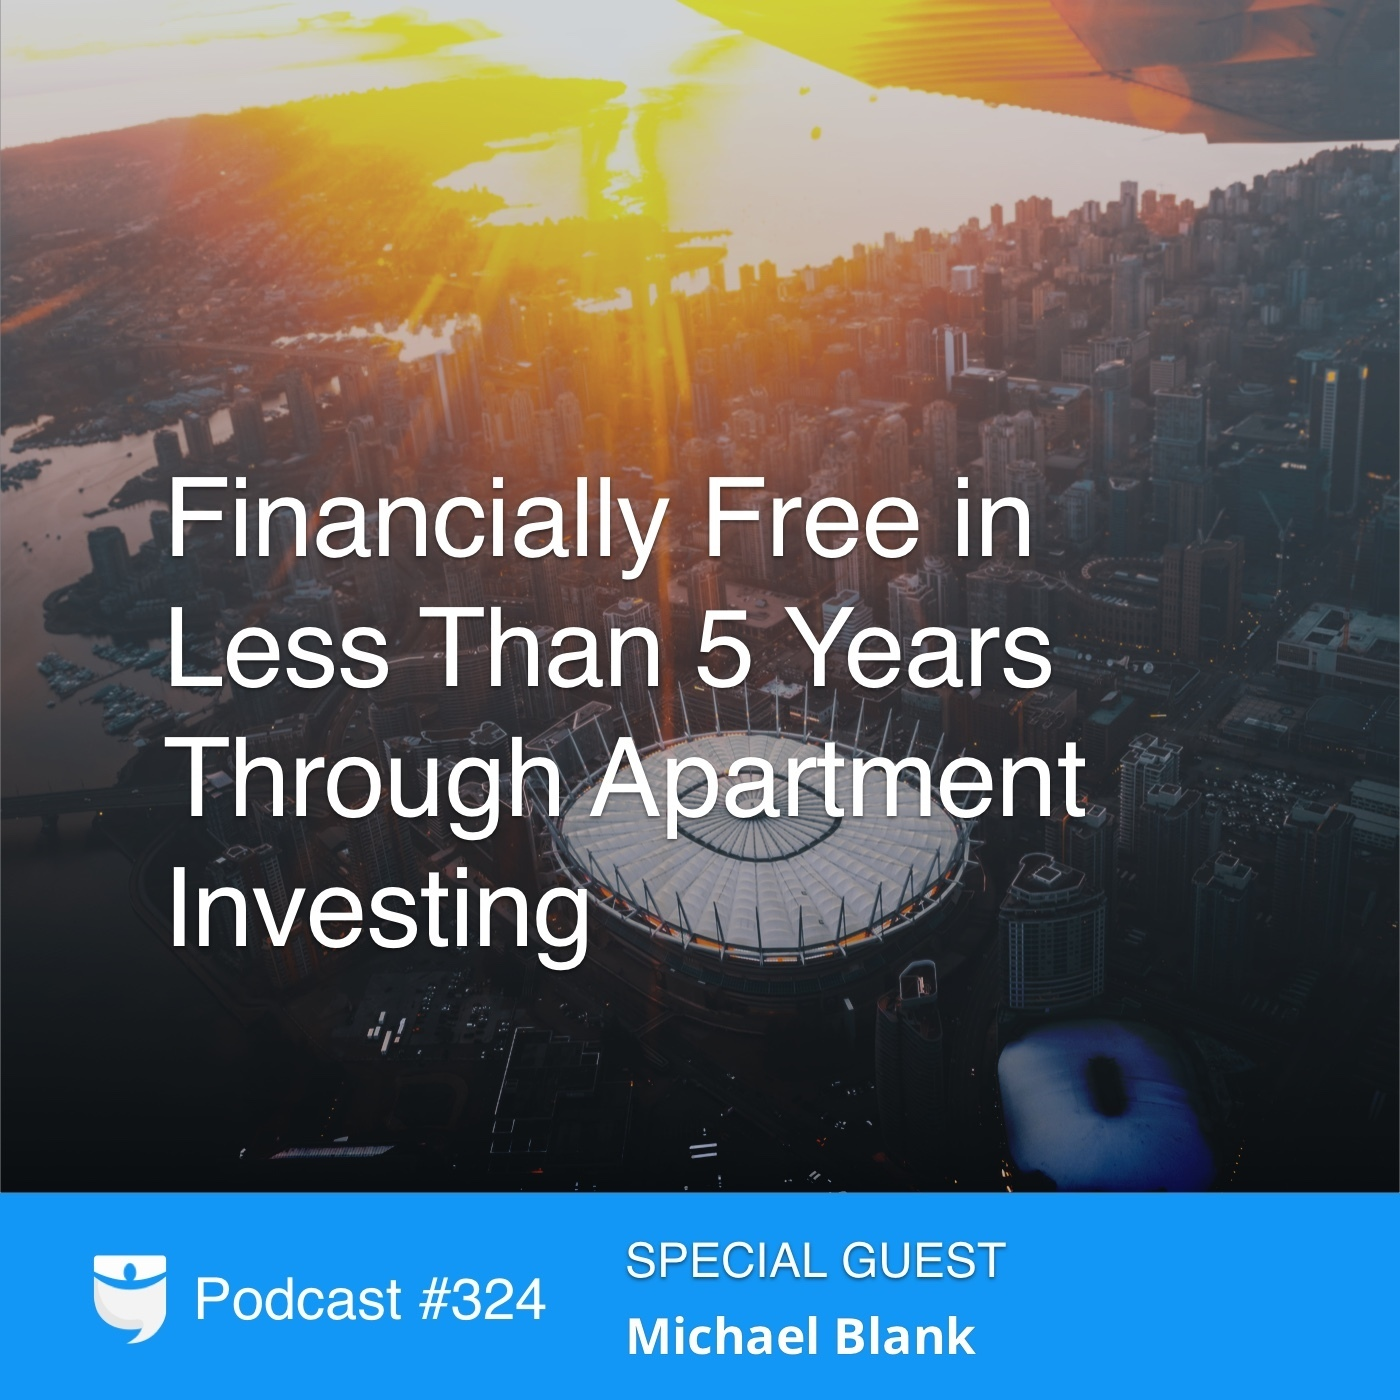 #324: Financially Free in Less Than 5 Years Through Apartment Investing With Michael Blank